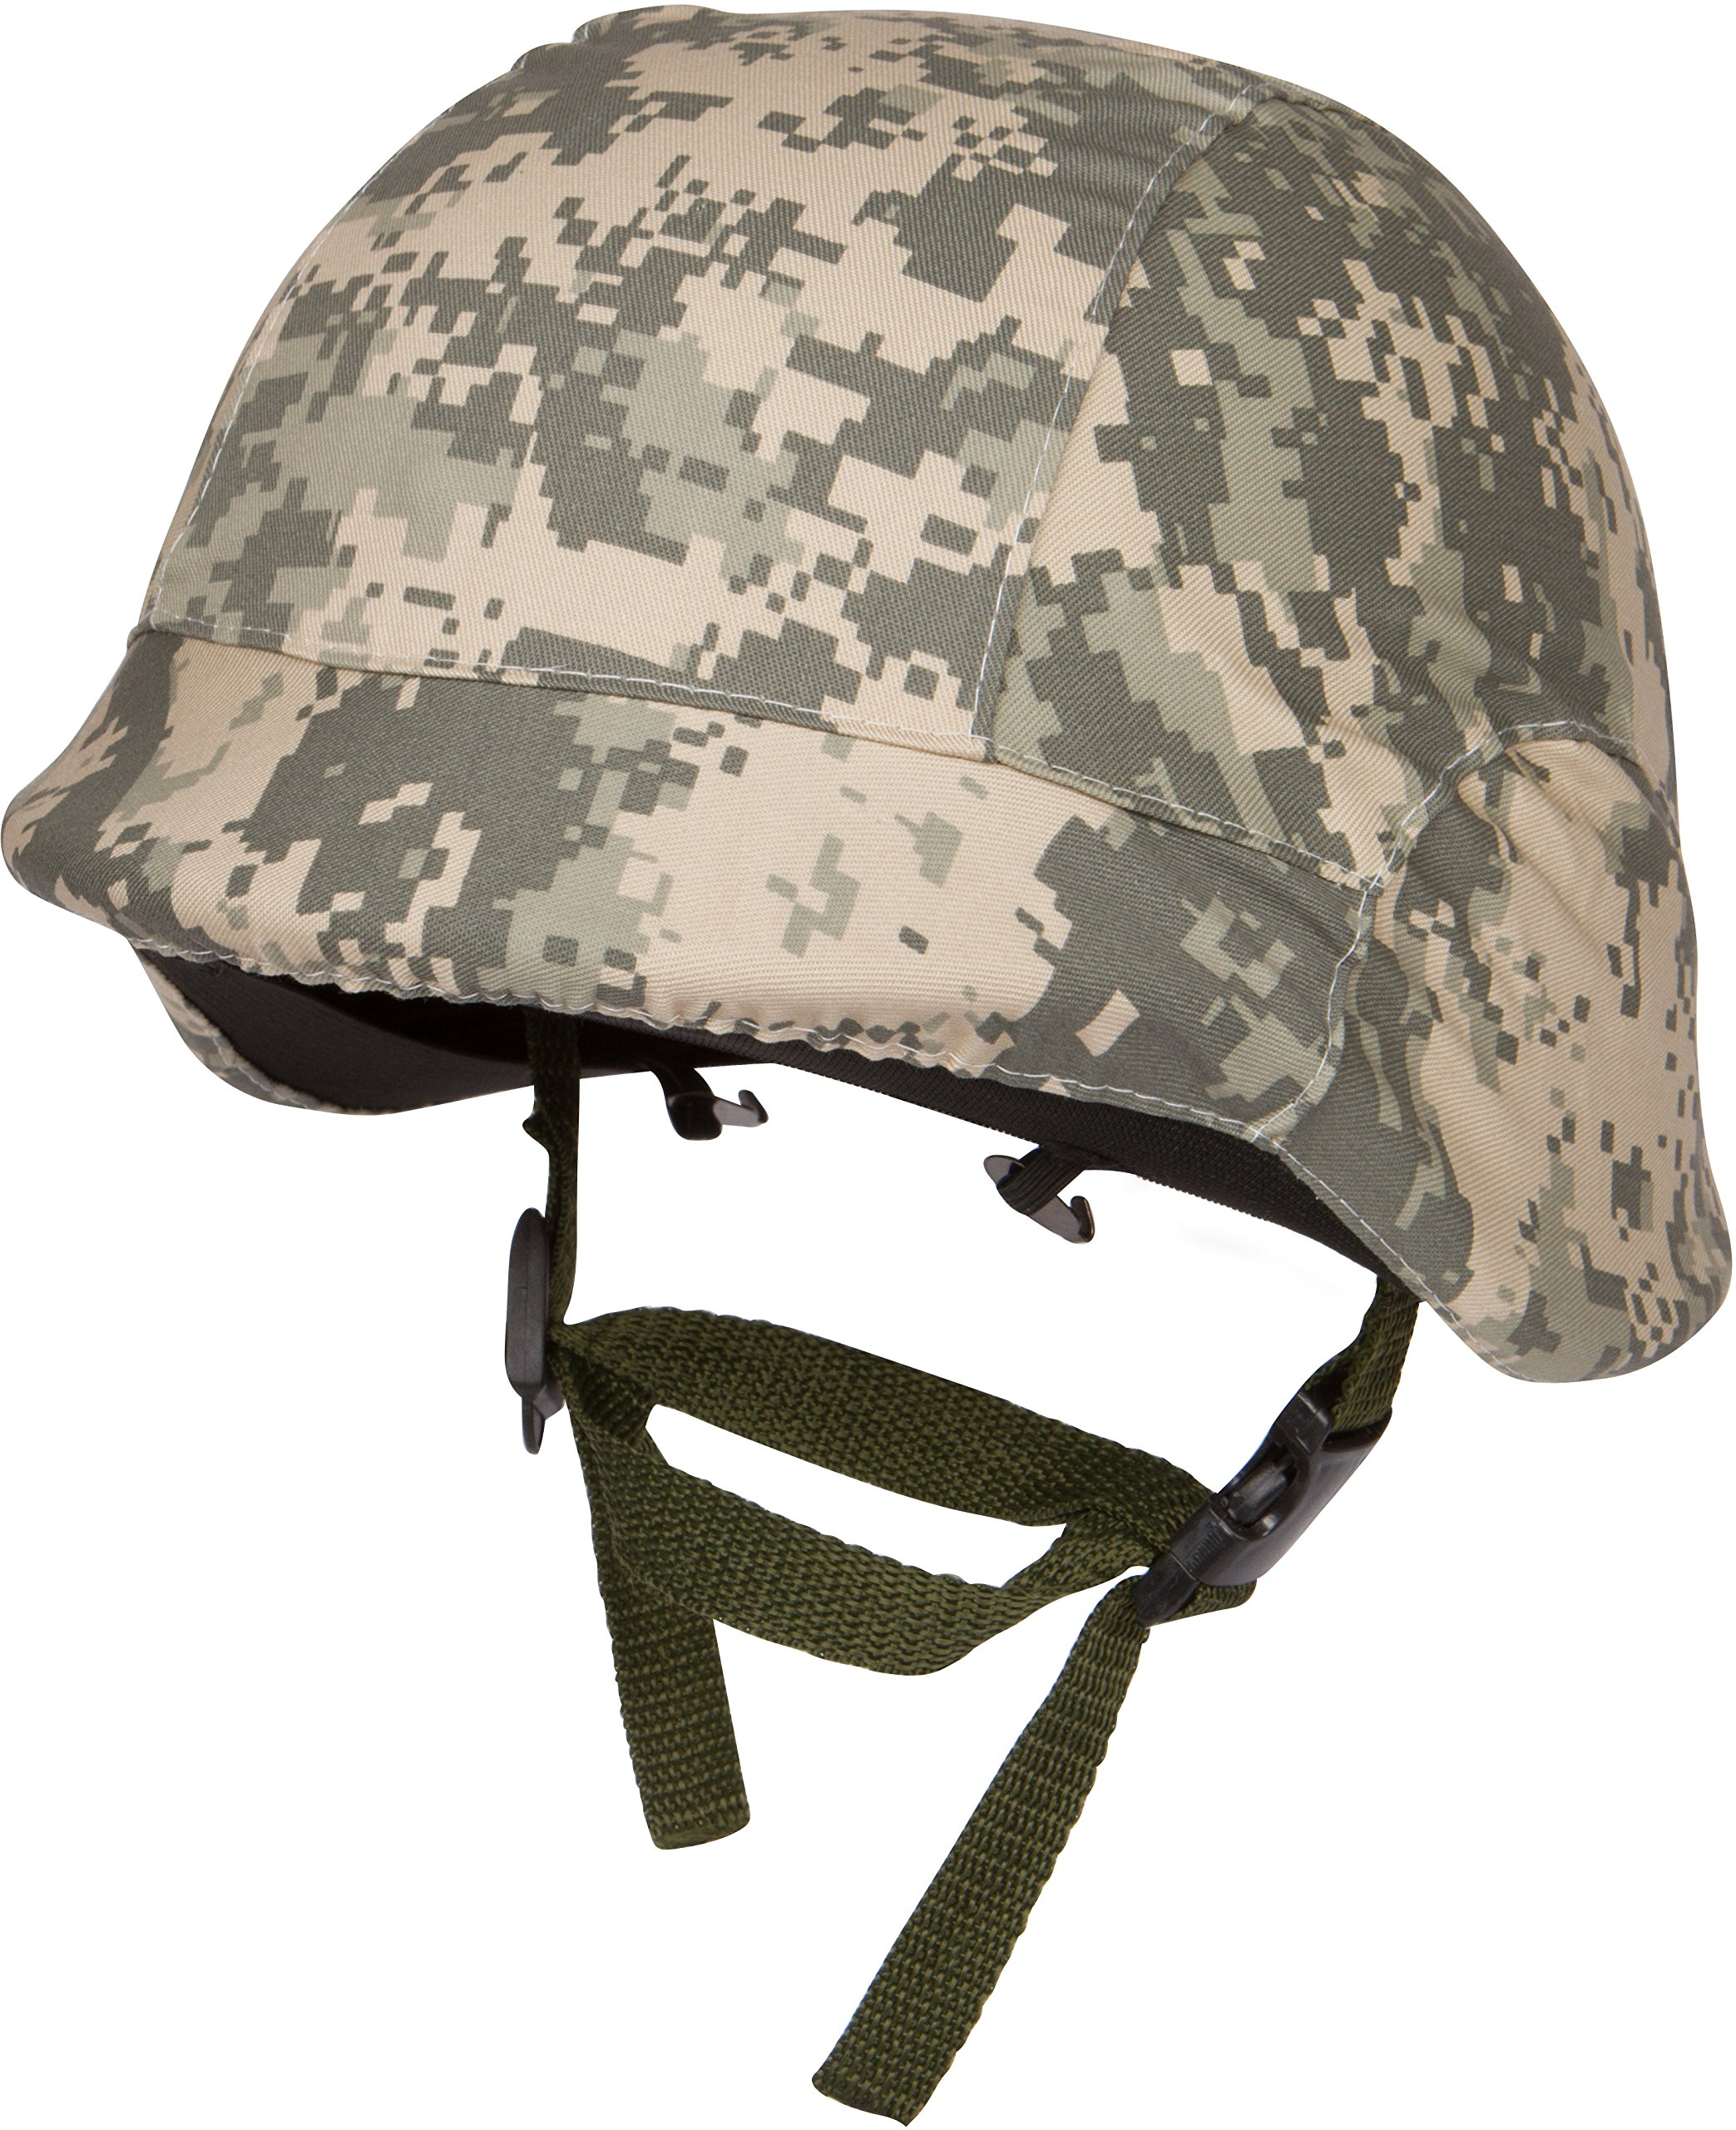 Modern Warrior Tactical M88 ABS Tactical Helmet with Adjustable Chin Strap, Digital Camo